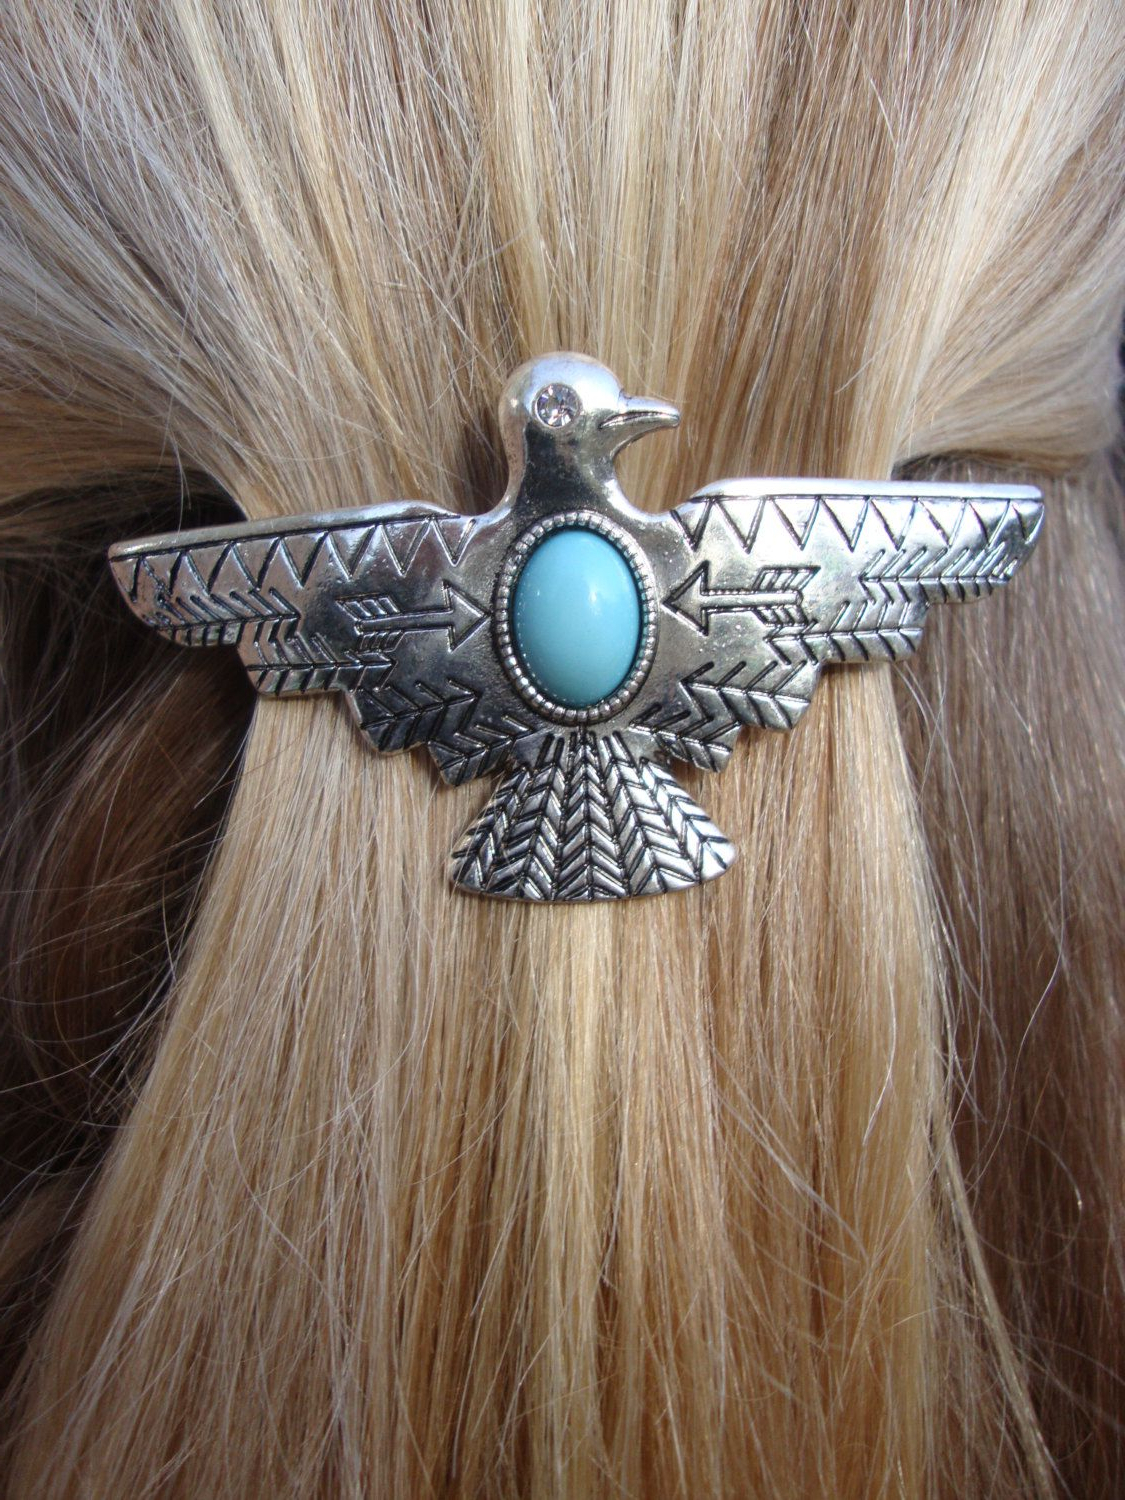 Silver Tribal Thunderbird Hair Barrette Hair Accessory Boho Chic Throughout Recent Graded Ponytail Hairstyles With A Butterfly Clasp (Gallery 20 of 20)